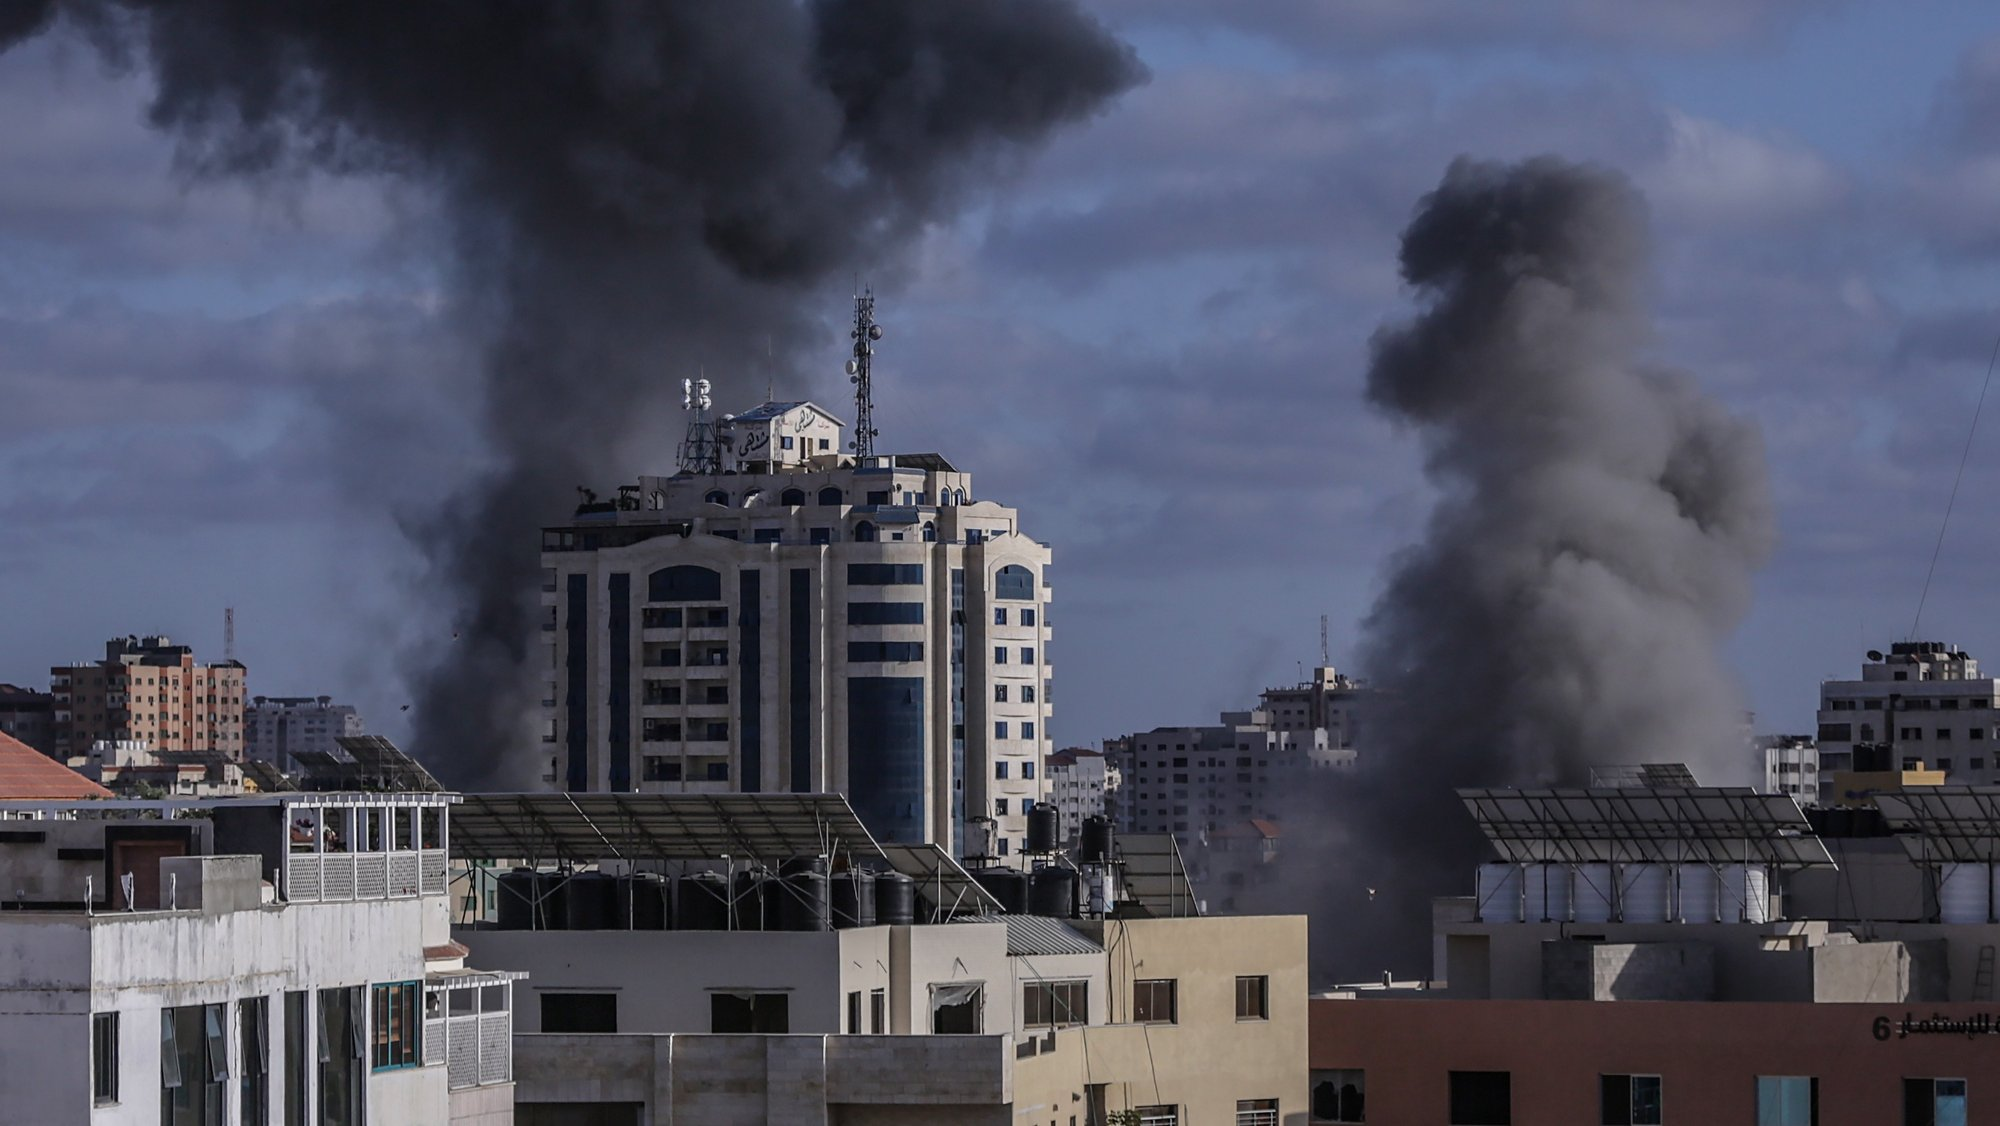 epa09207489 Smoke rise after an israeli air strike in Gaza City, 17 May 2021. In response to days of violent confrontations between Israeli security forces and Palestinians in Jerusalem, various Palestinian militants factions in Gaza launched rocket attacks since 10 May that killed at least six Israelis to date. Gaza Strip's health ministry said that at least 65 Palestinians, including 13 children, were killed in the recent retaliatory Israeli airstrikes. Hamas confirmed the death of Bassem Issa, its Gaza City commander, during an airstrike.  EPA/HAITHAM IMAD